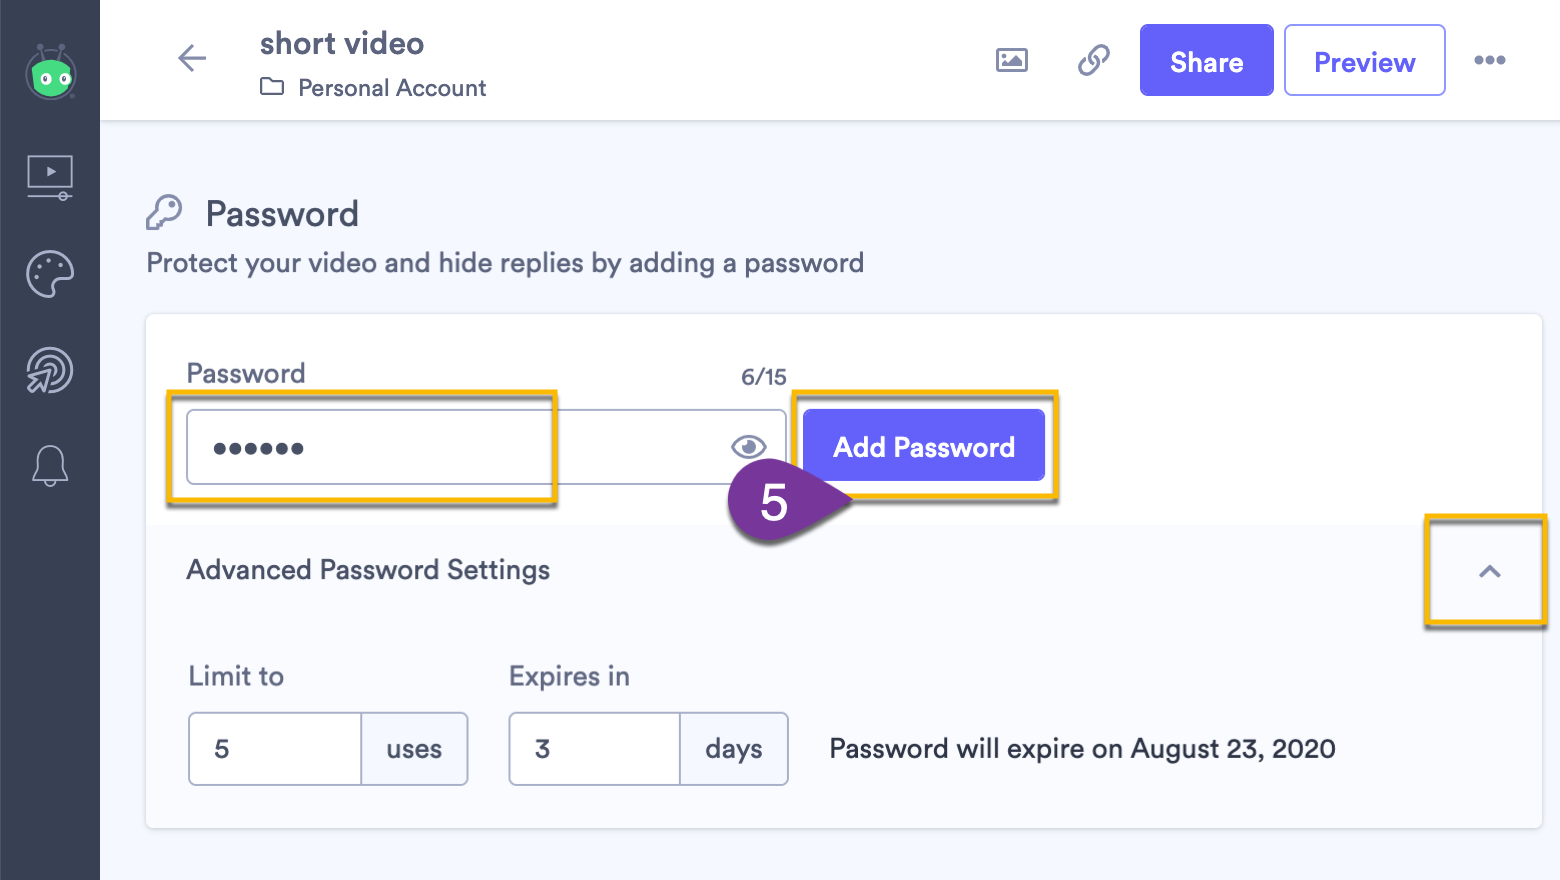 Selecting the Add Password button again once you've changed or updated the password and any advanced settings